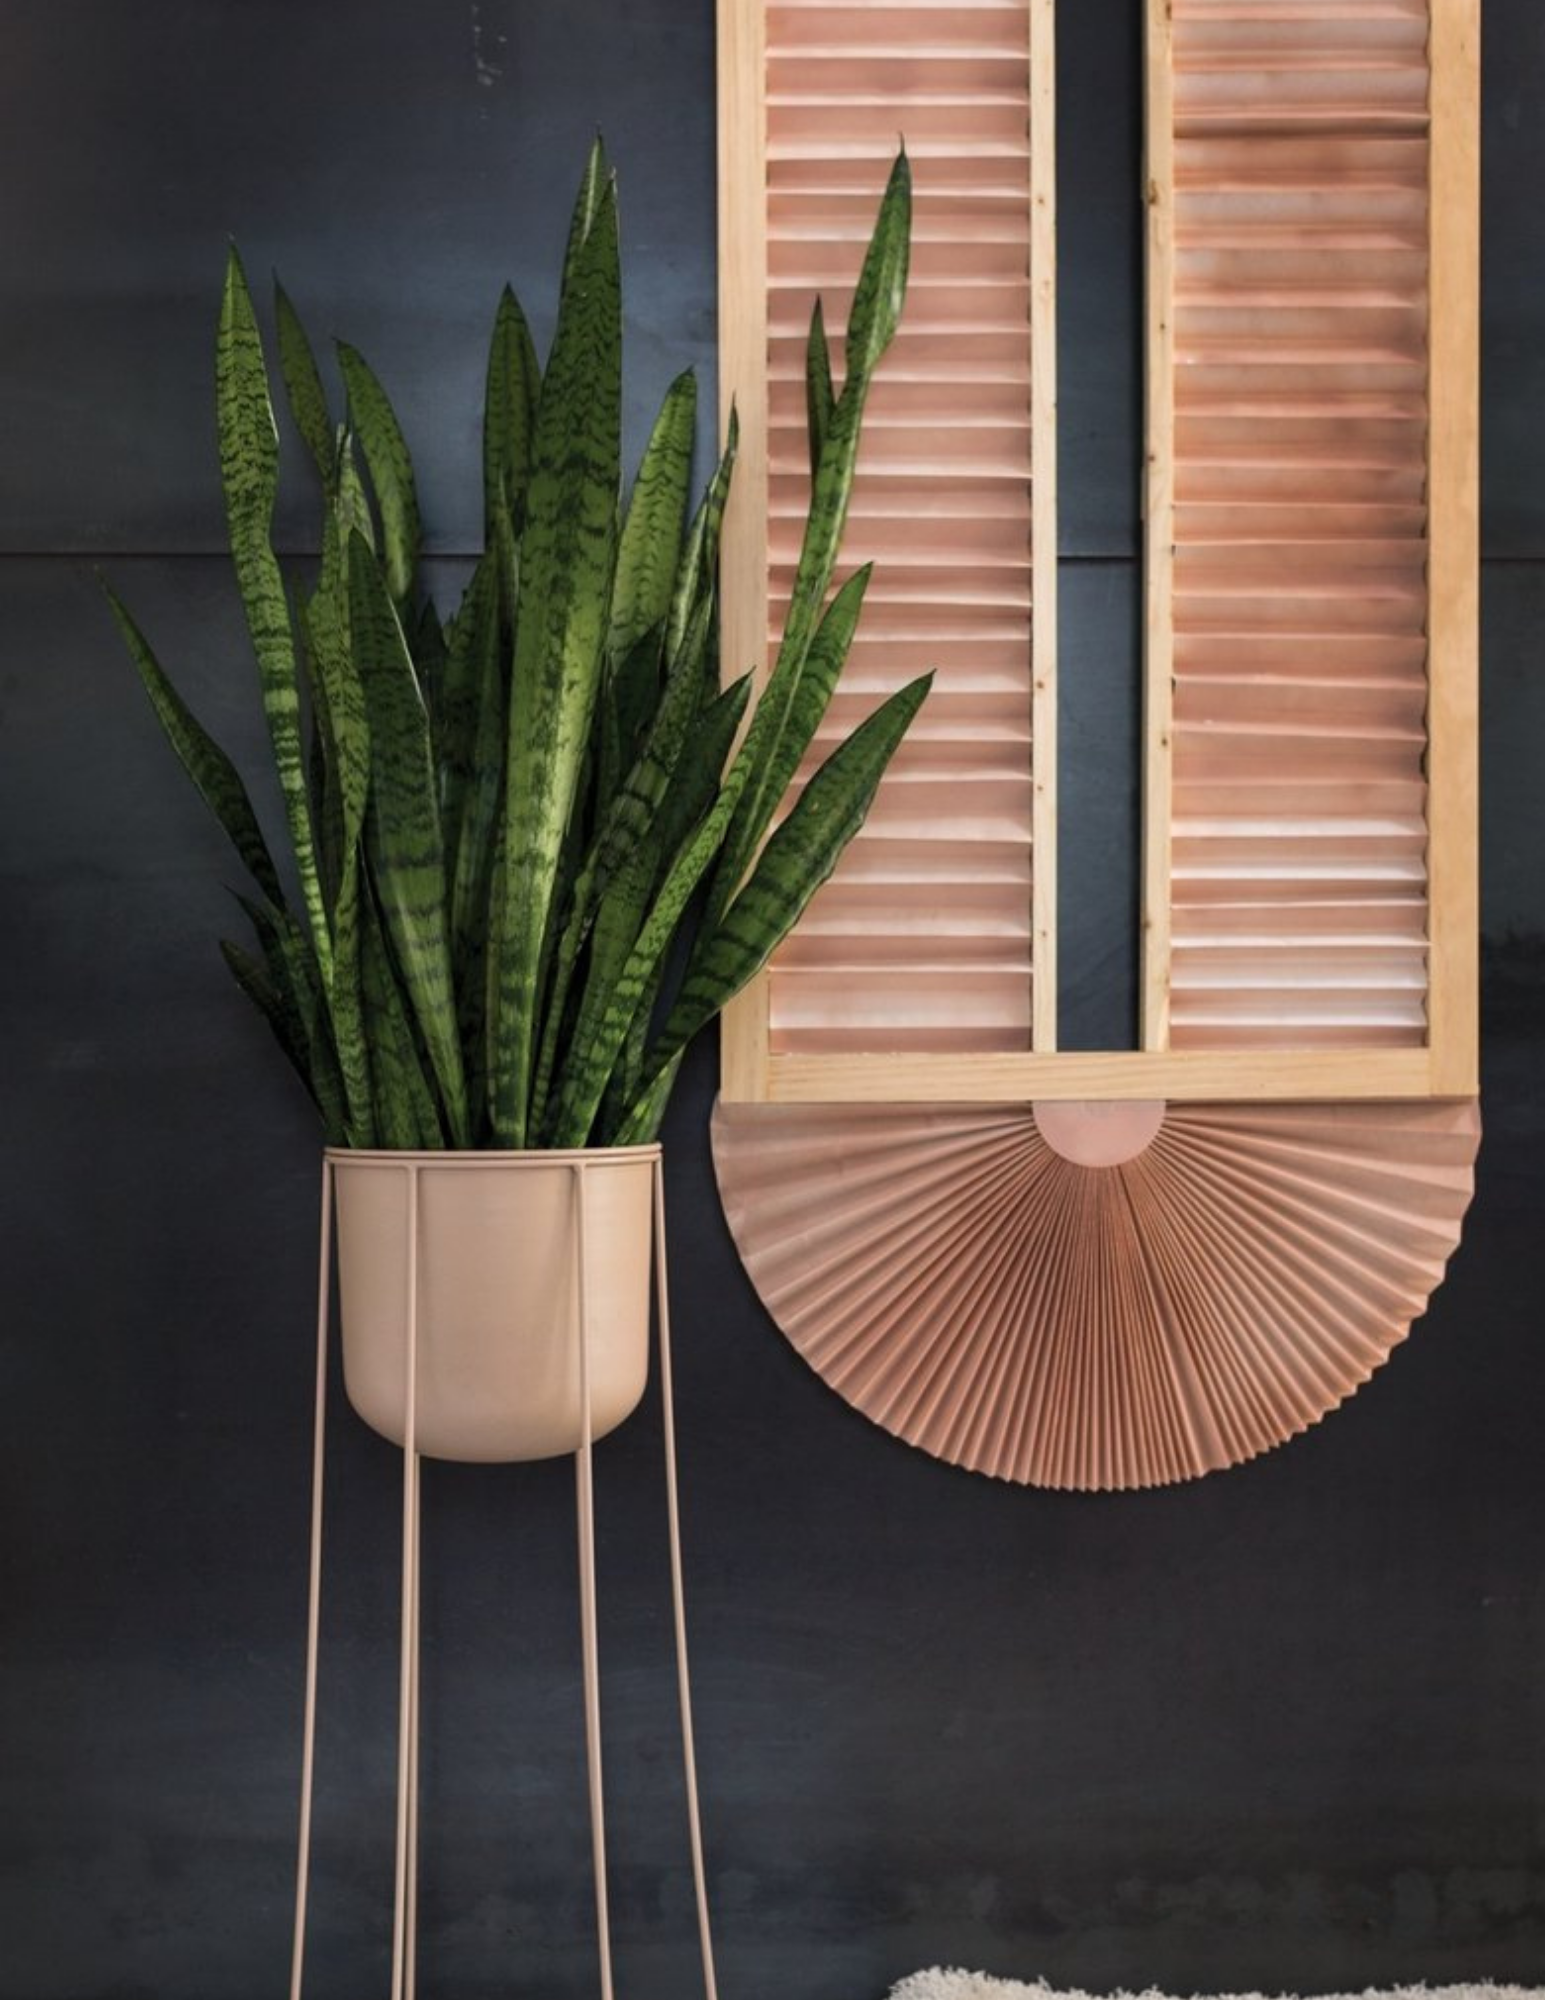 SANSEVIERIA IN PINK PLANT STAND NEXT TO A WOODEN WALL PANEL ON A BLACK BACKGROUND